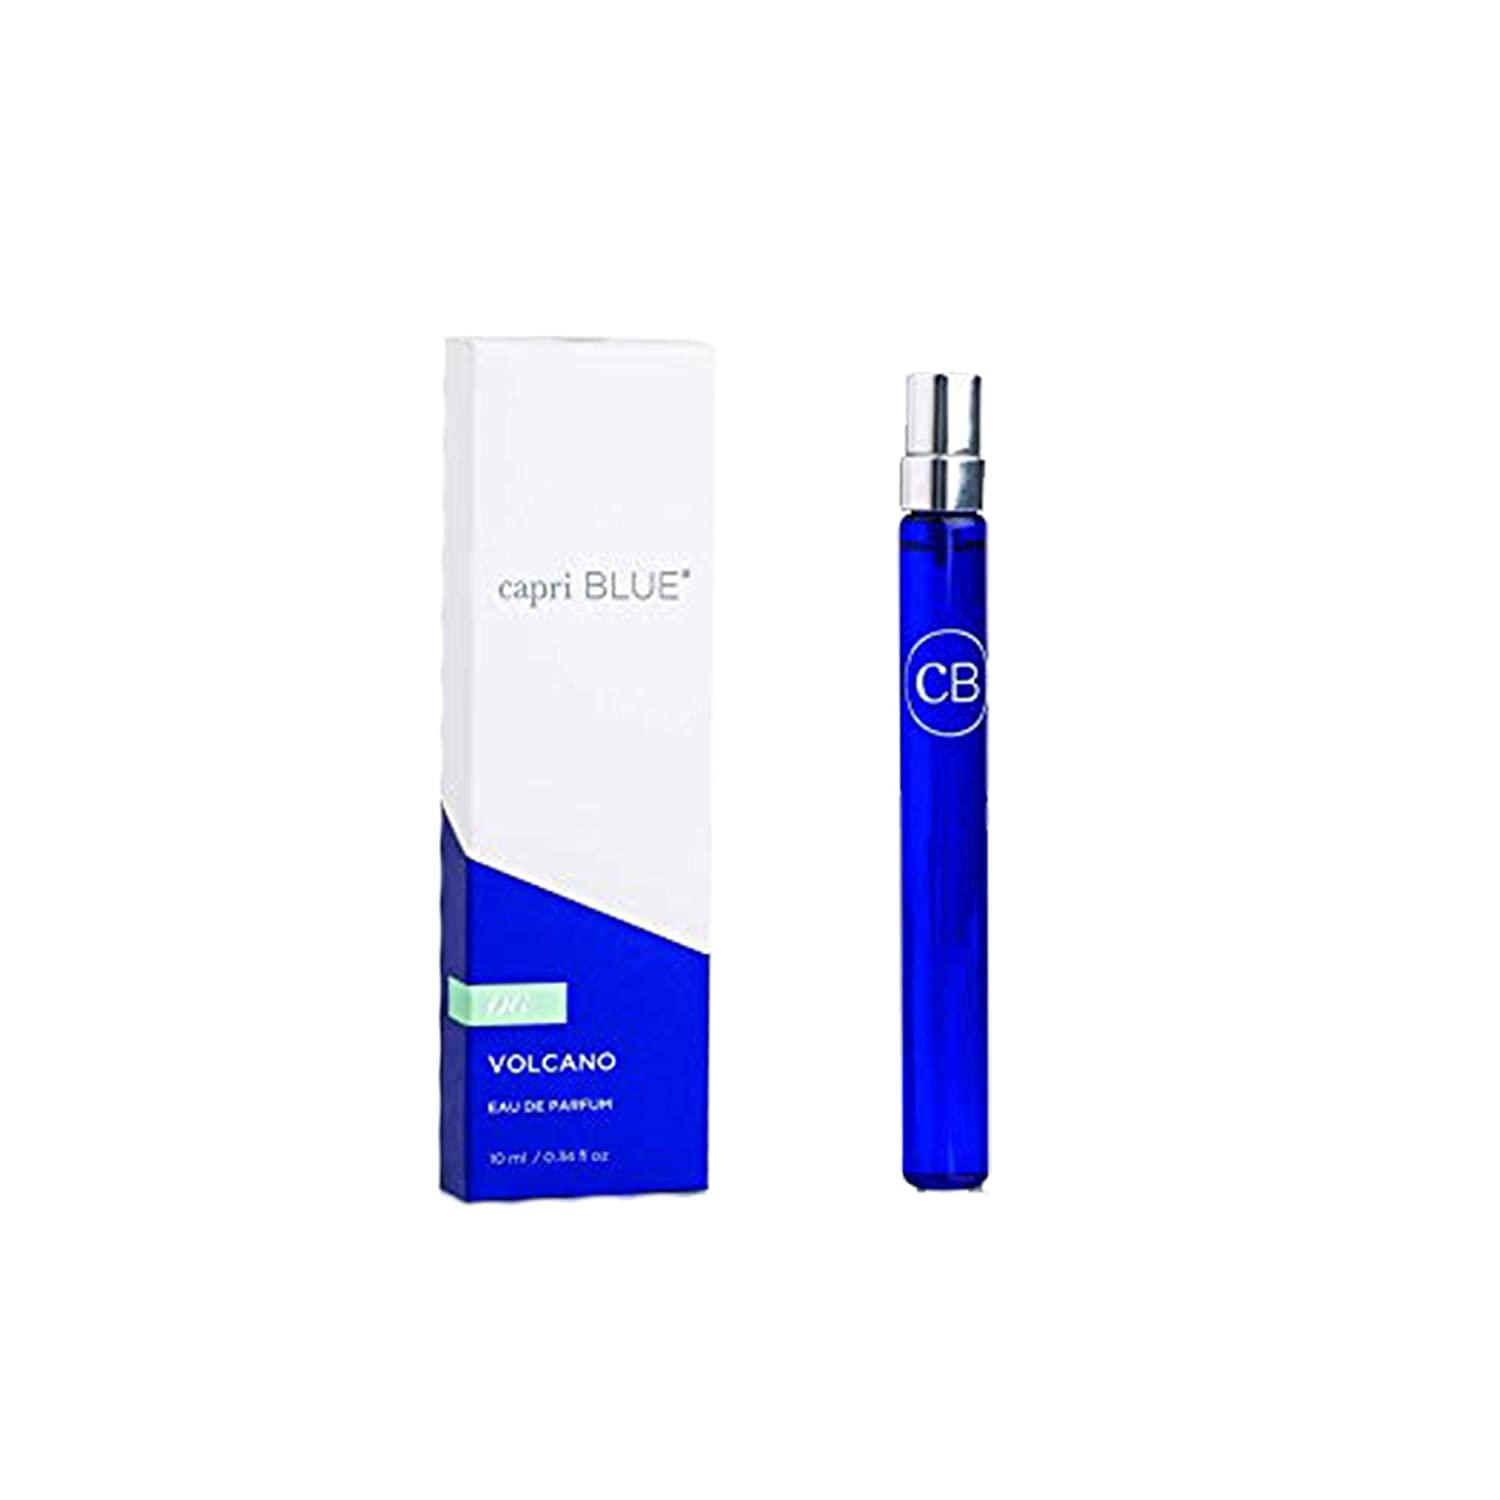 Capri Blue Volcano .34 FL OZ PARFUM SPRAY PEN